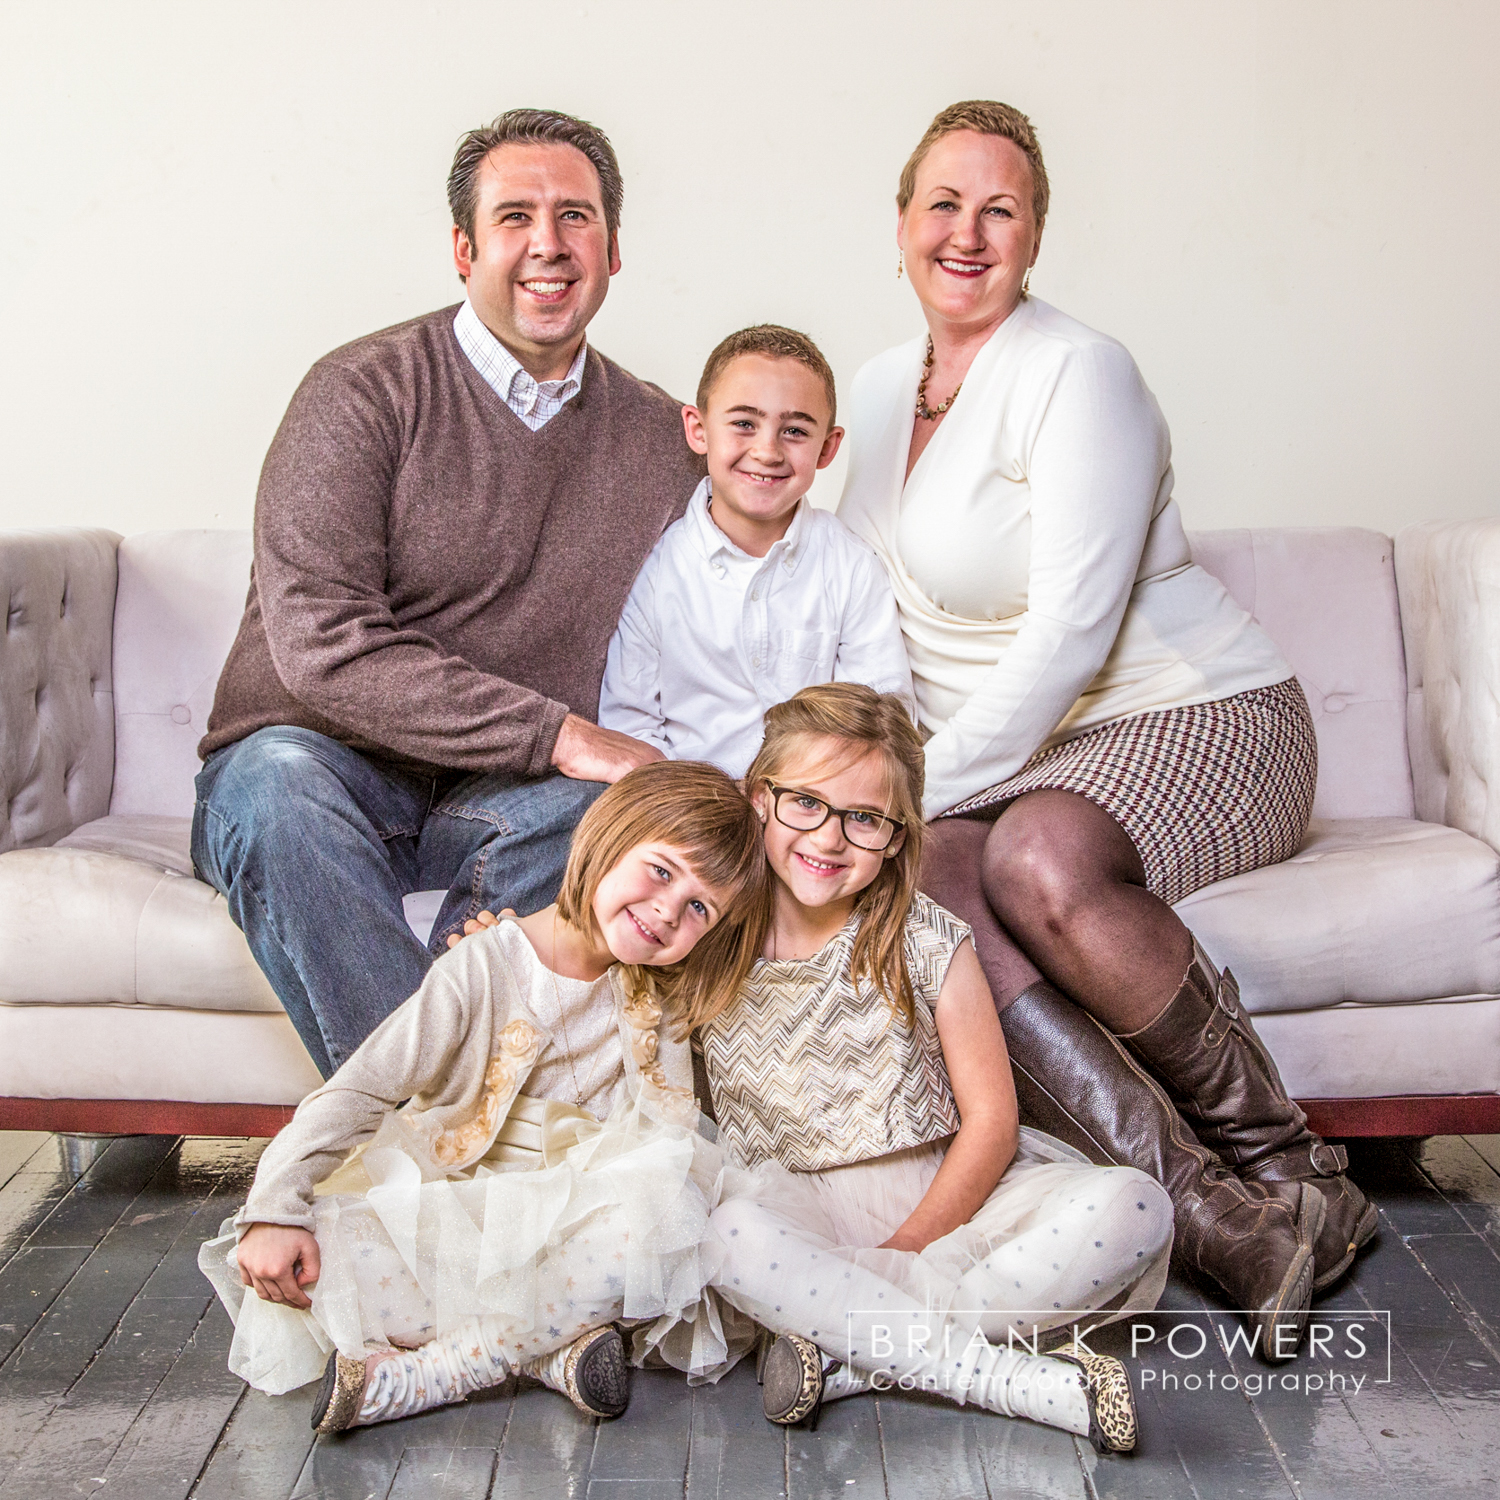 Portrait-Website McBride-Family_portrait_with_children-016.jpg